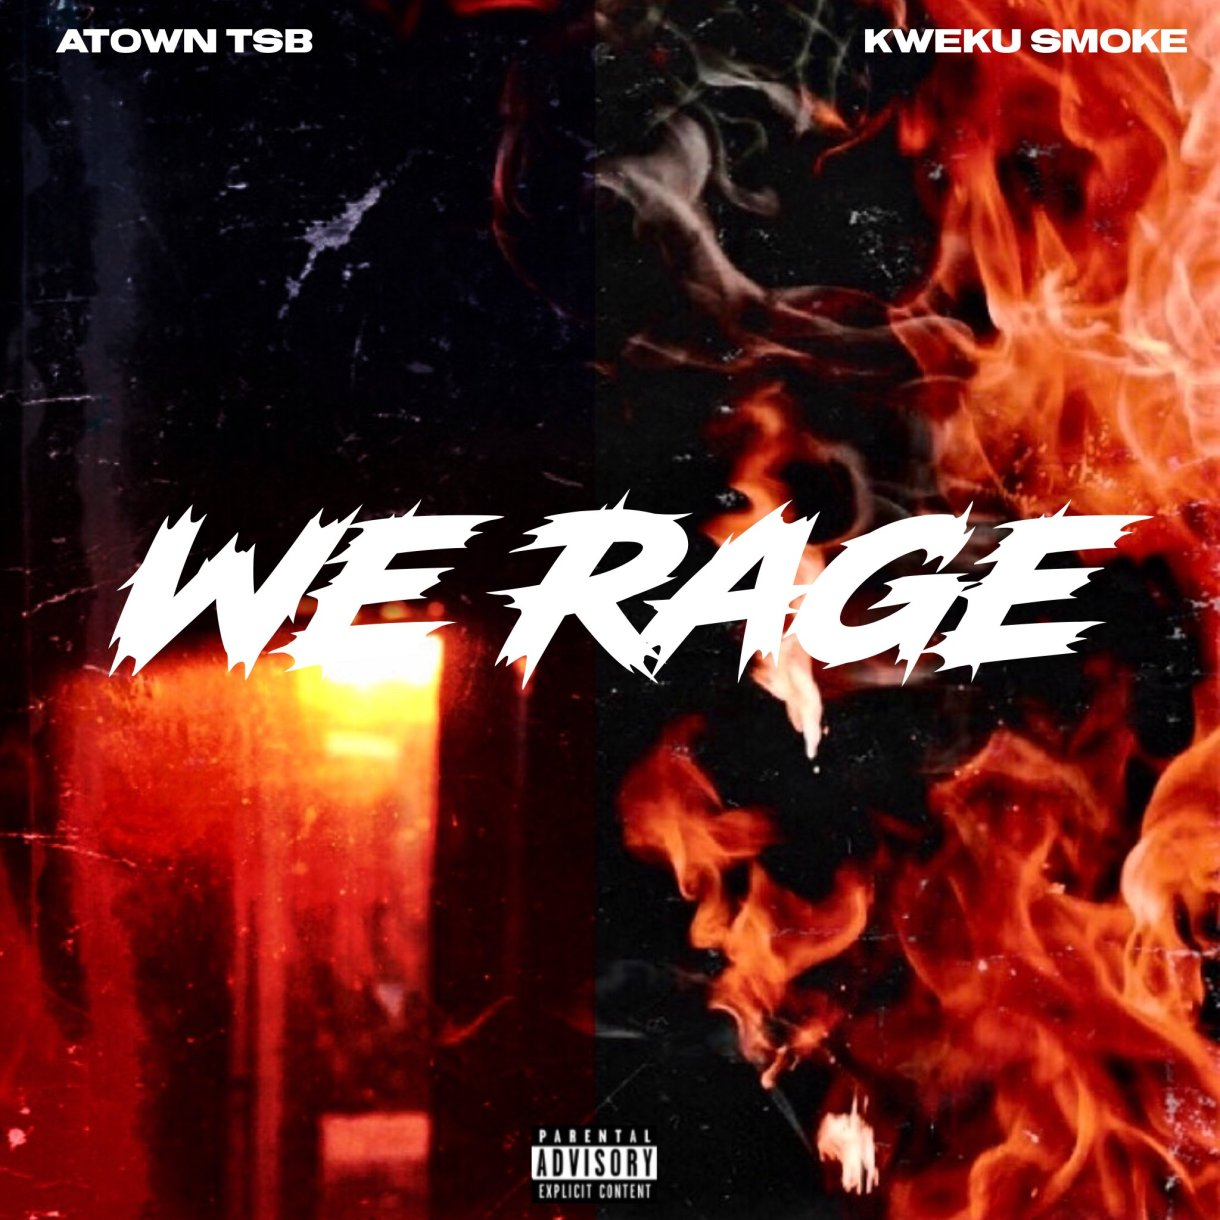 Kweku Smoke x Atown TSB – We Rage EP (Full Album)